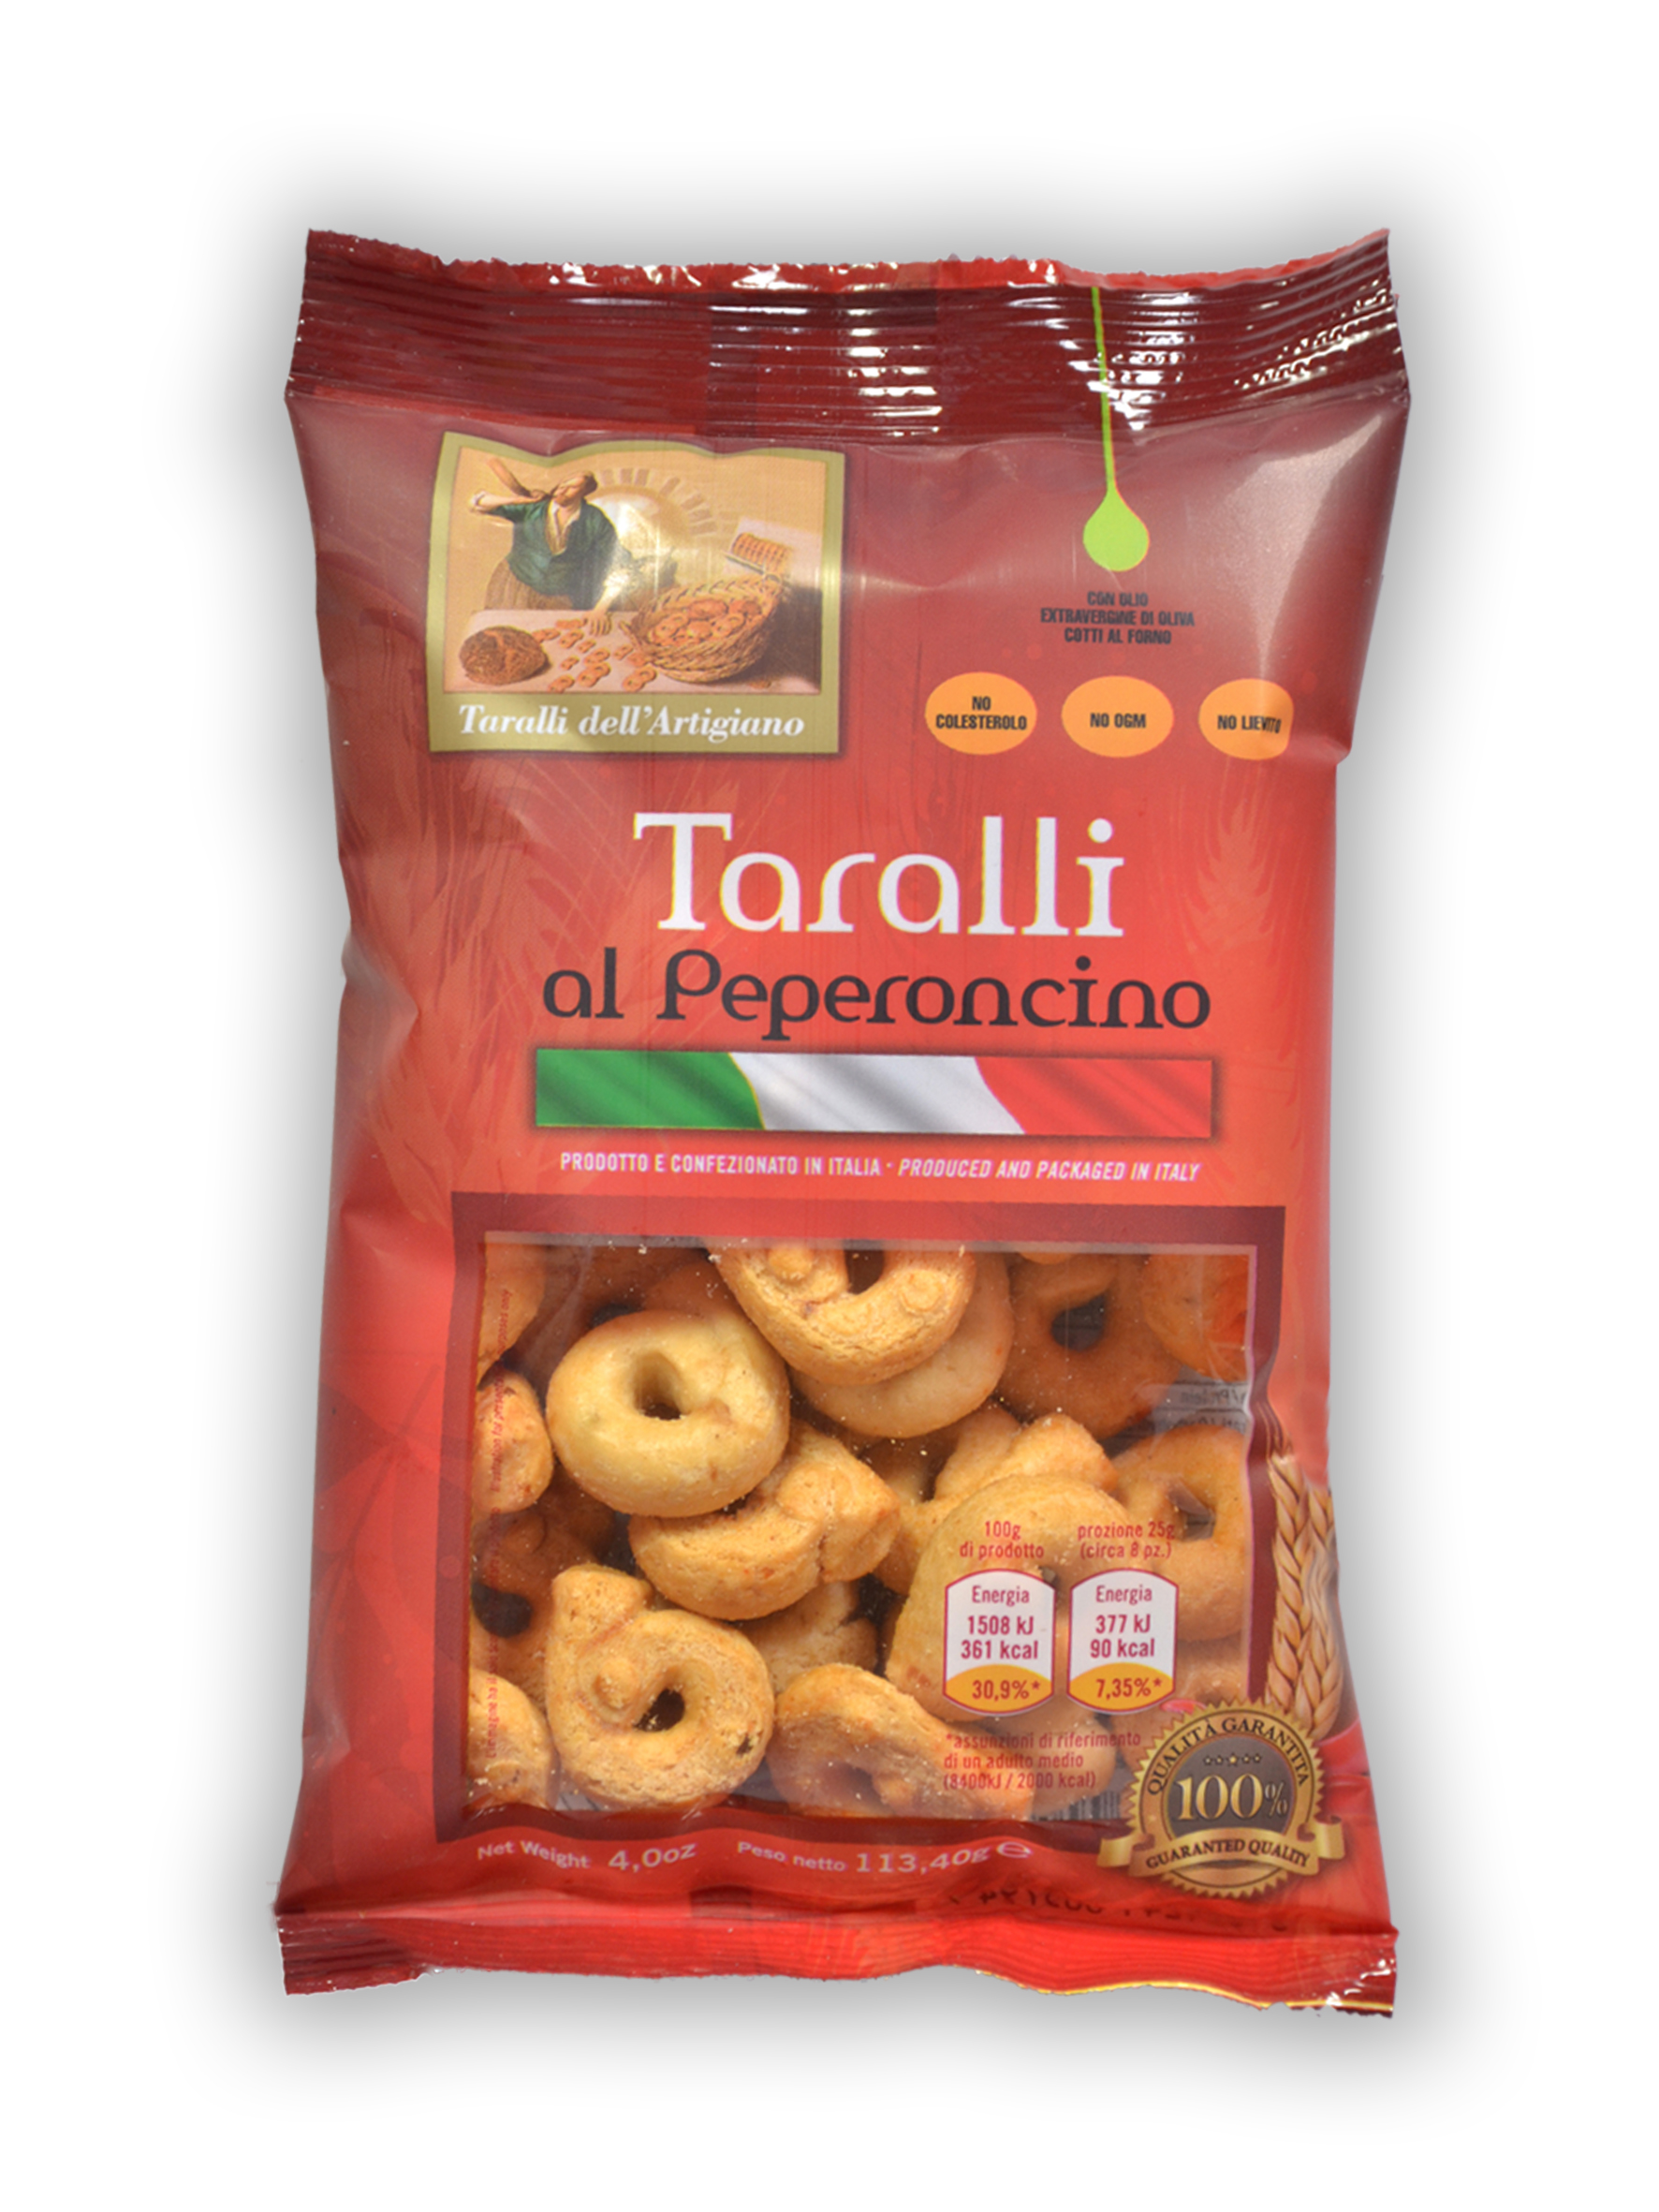 Taralli Friabili (with chili pepper)